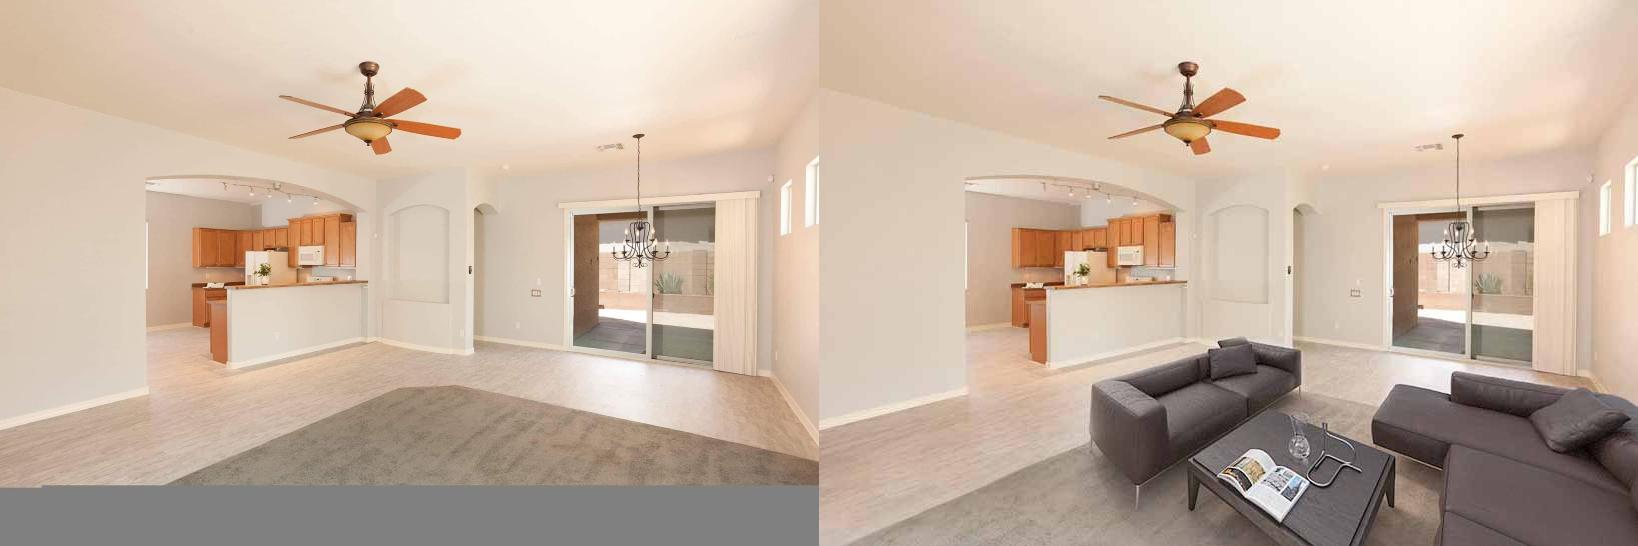 before and after 3d interior rendering services 3D Interior Rendering Services by JMSDCONSULTANT